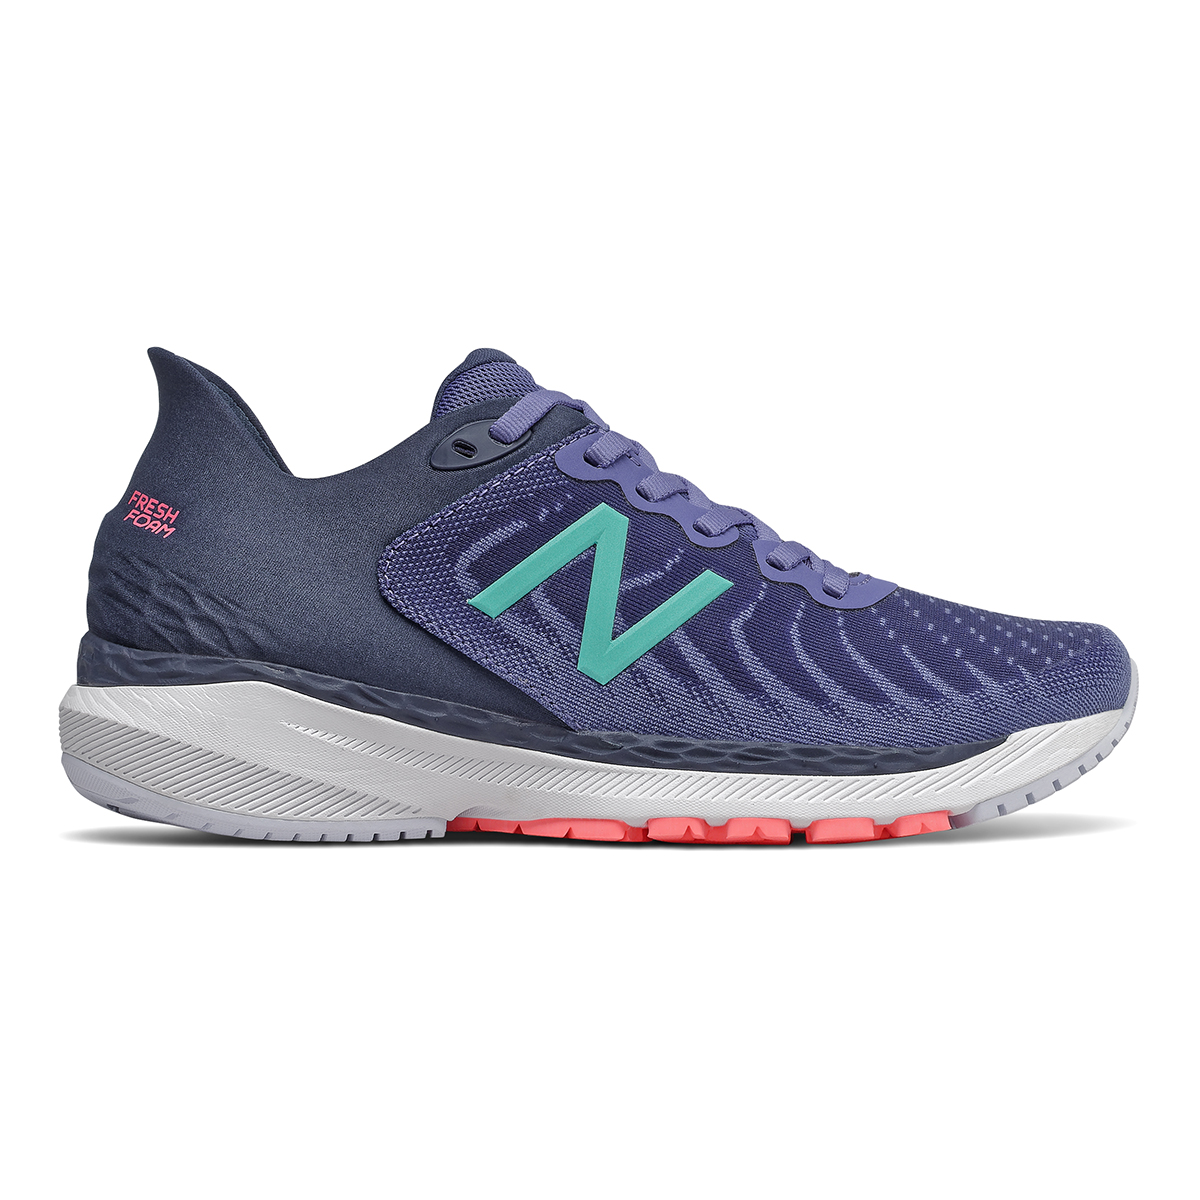 Women's New Balance 860V11 Running Shoe - Color: Magnetic Blue - Size: 5 - Width: Narrow, Magnetic Blue, large, image 1